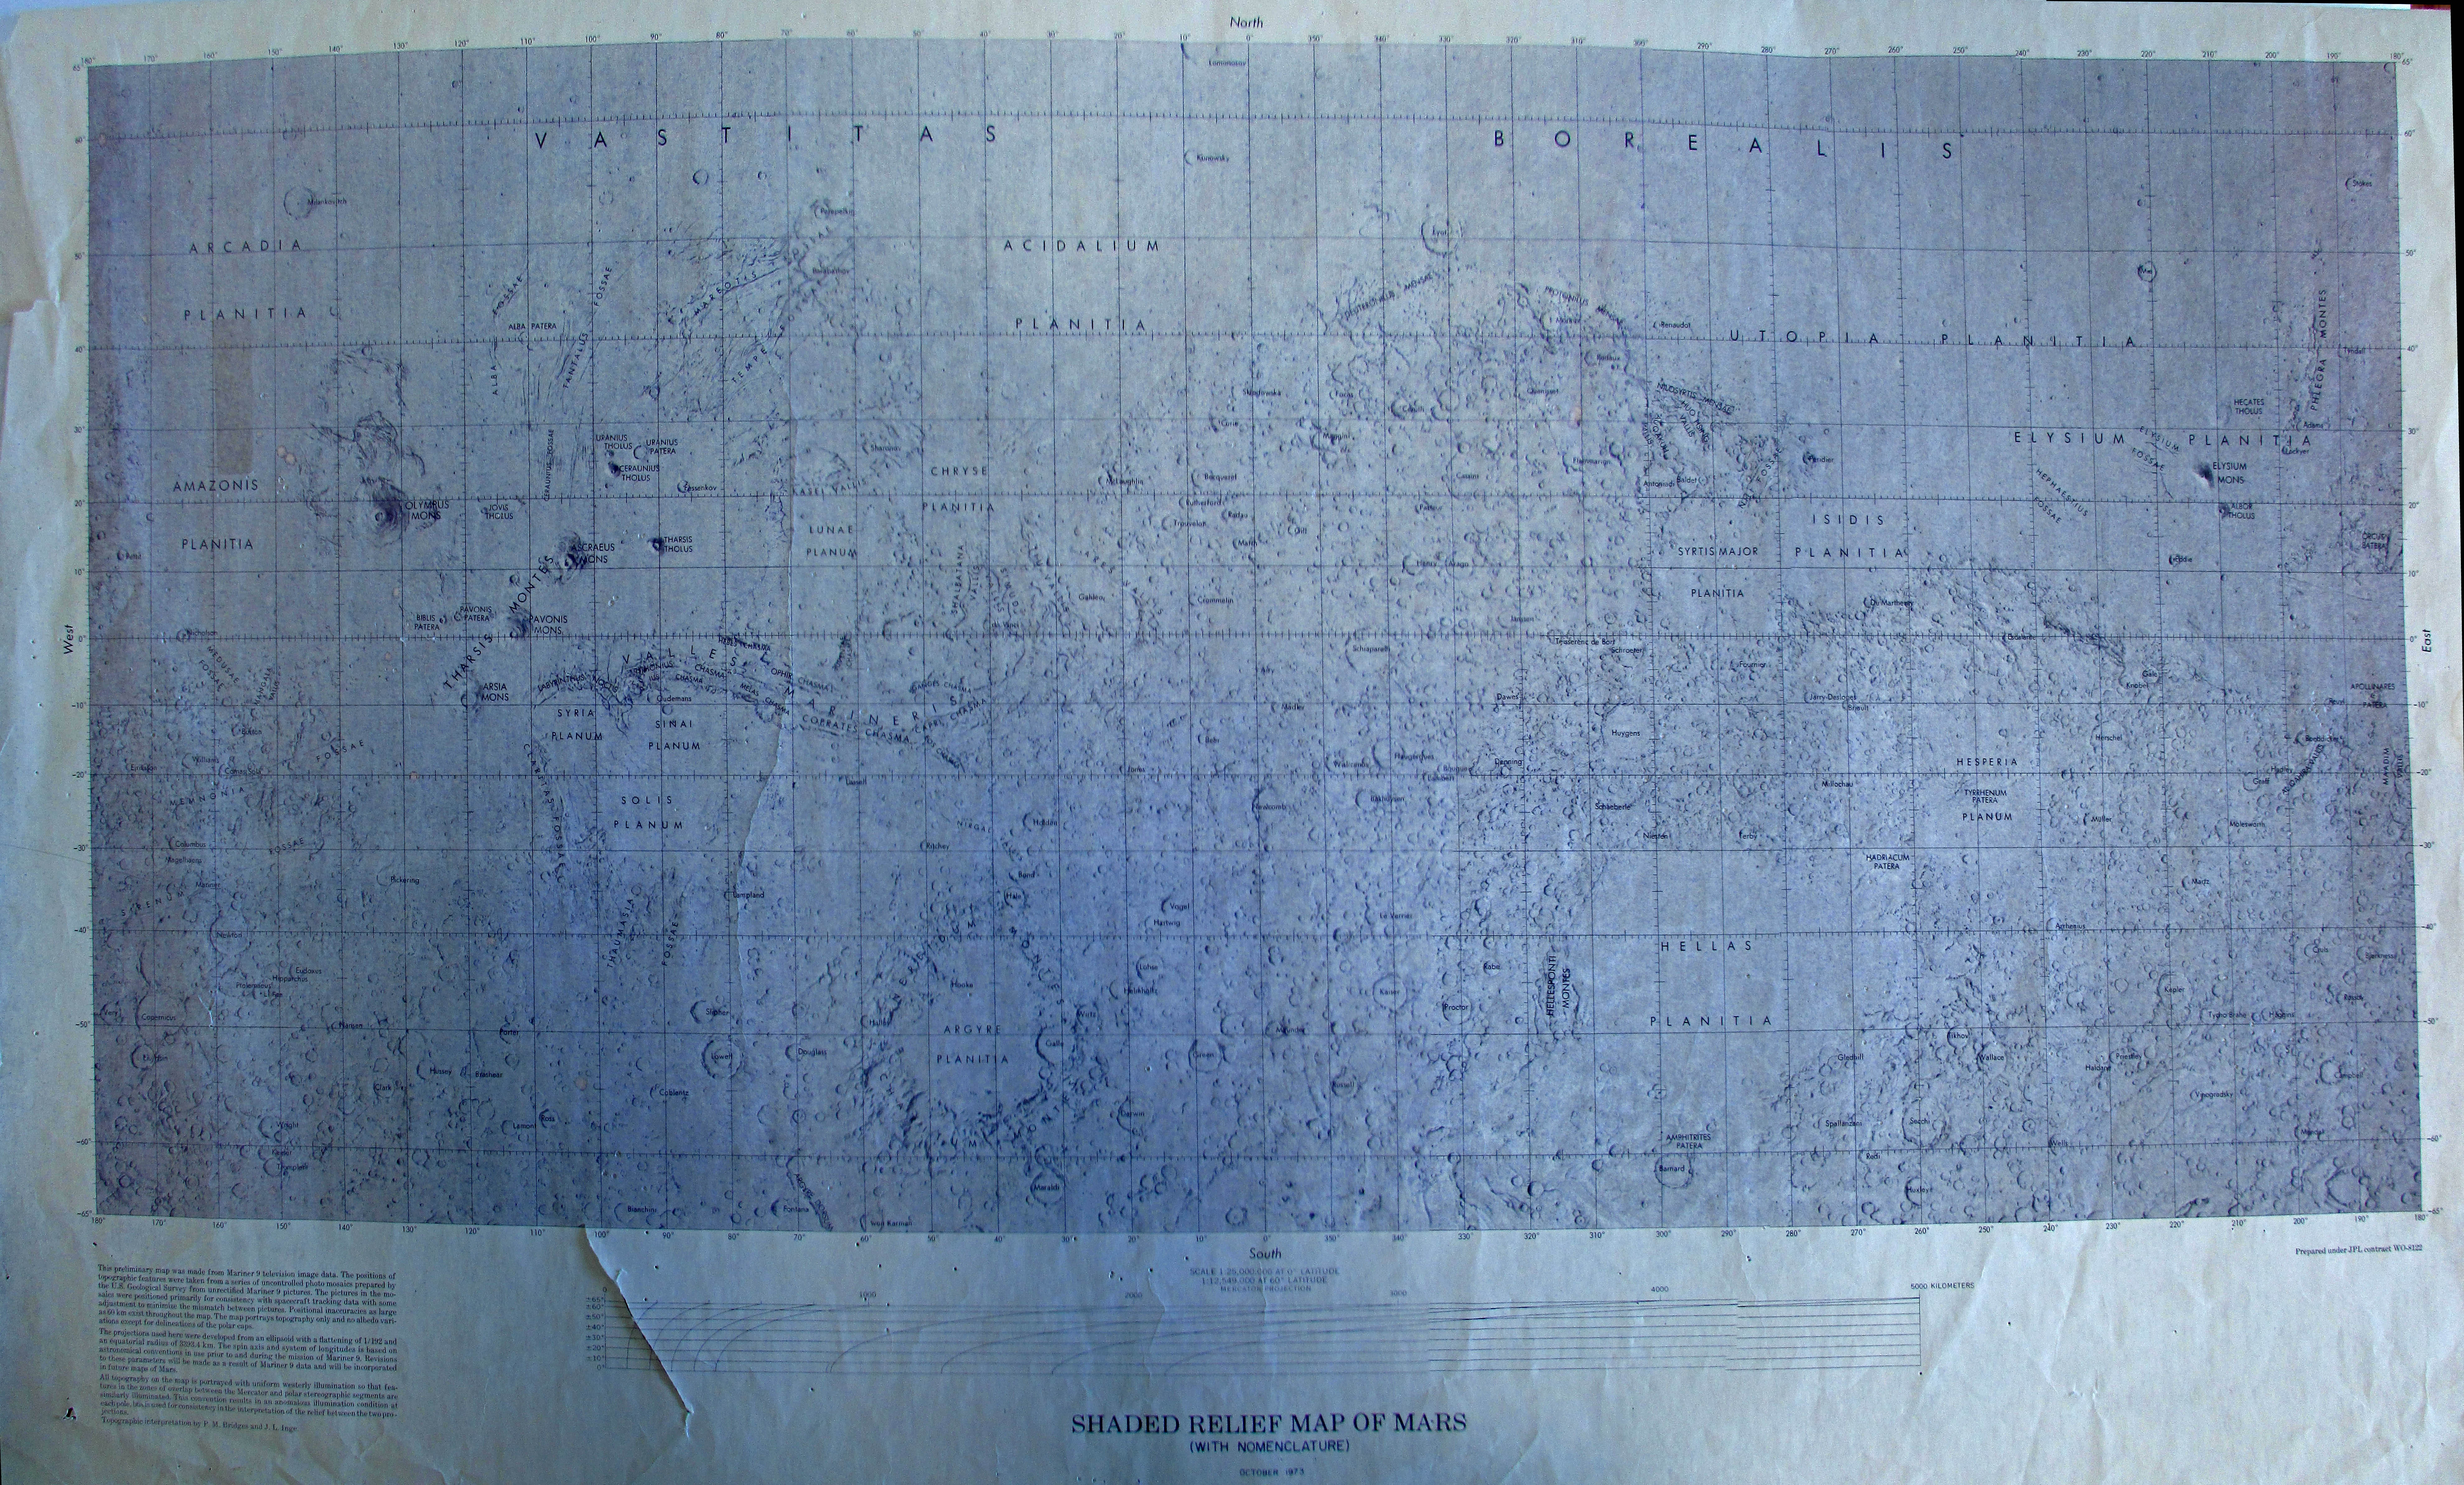 usgs_flagstaff_map_collection_44